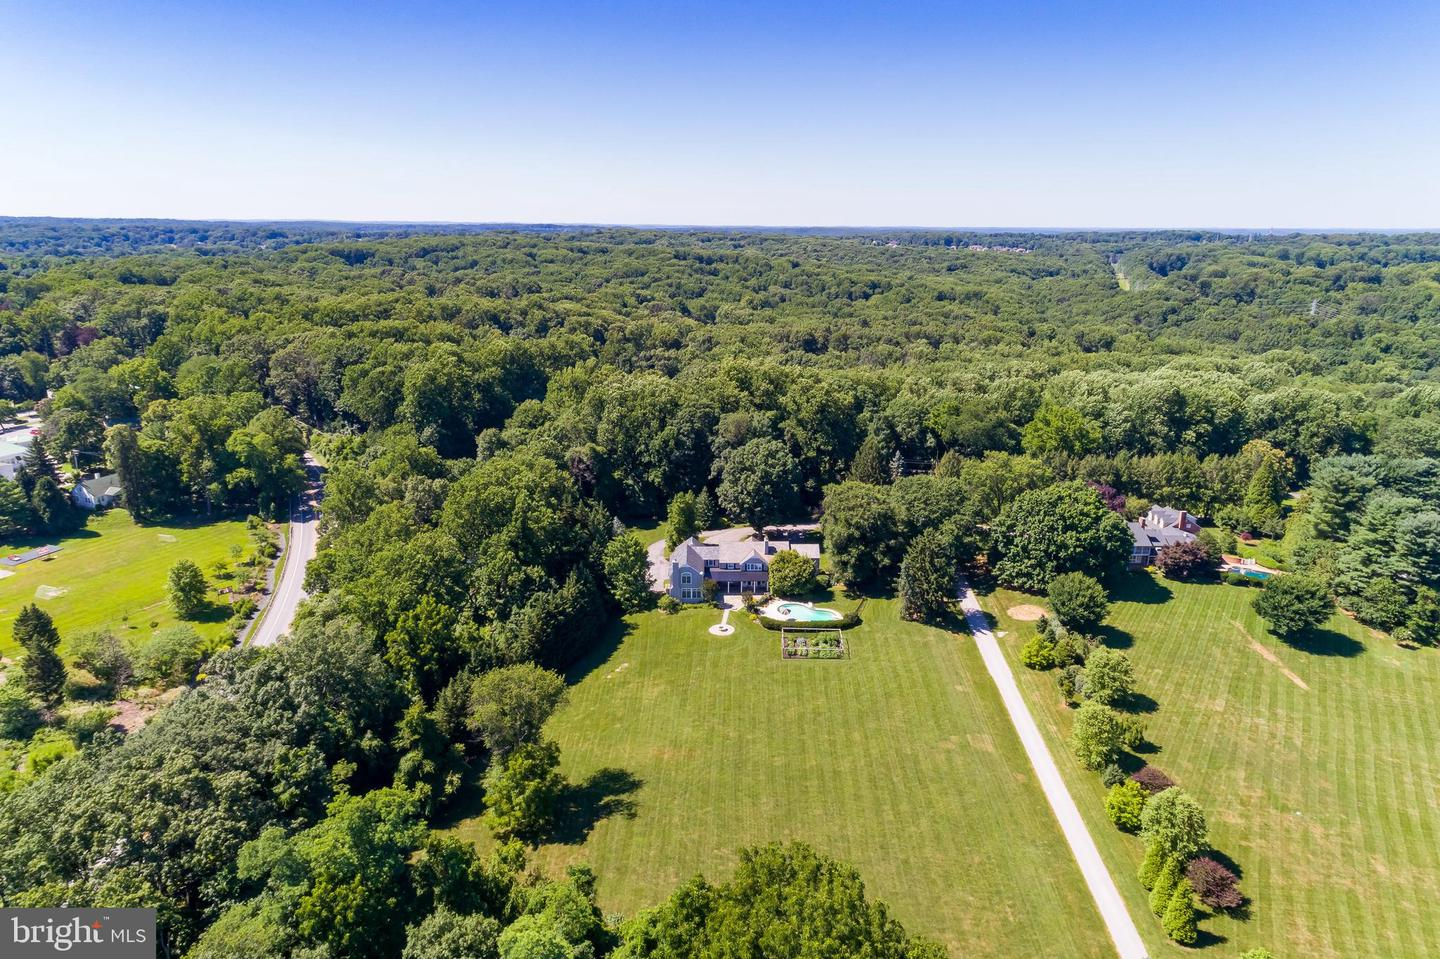 Land for Sale at Lutherville Timonium, Maryland 21093 United States